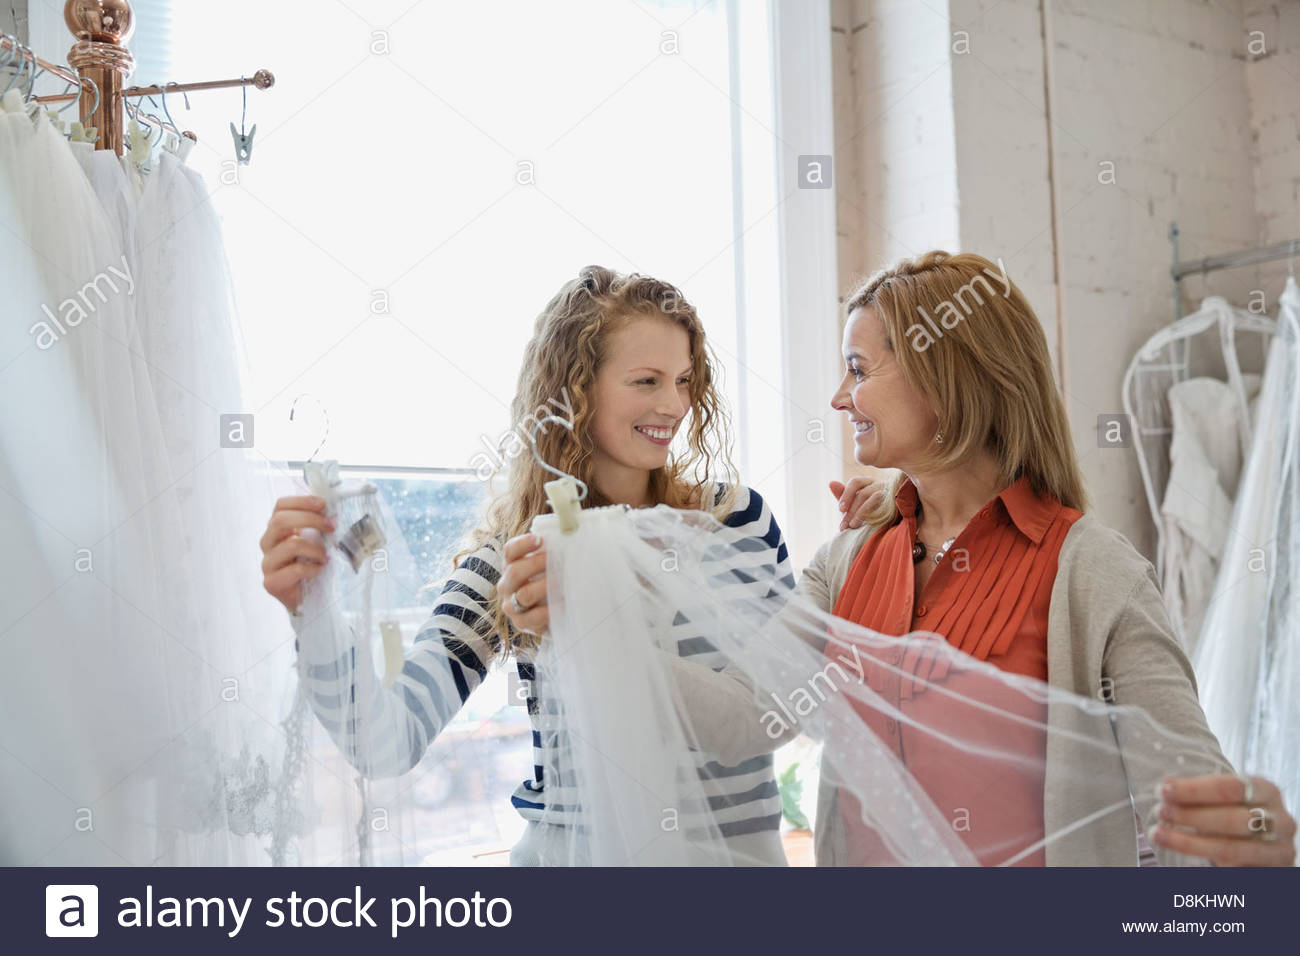 Mother and daughter shopping at bridal store - Stock Image